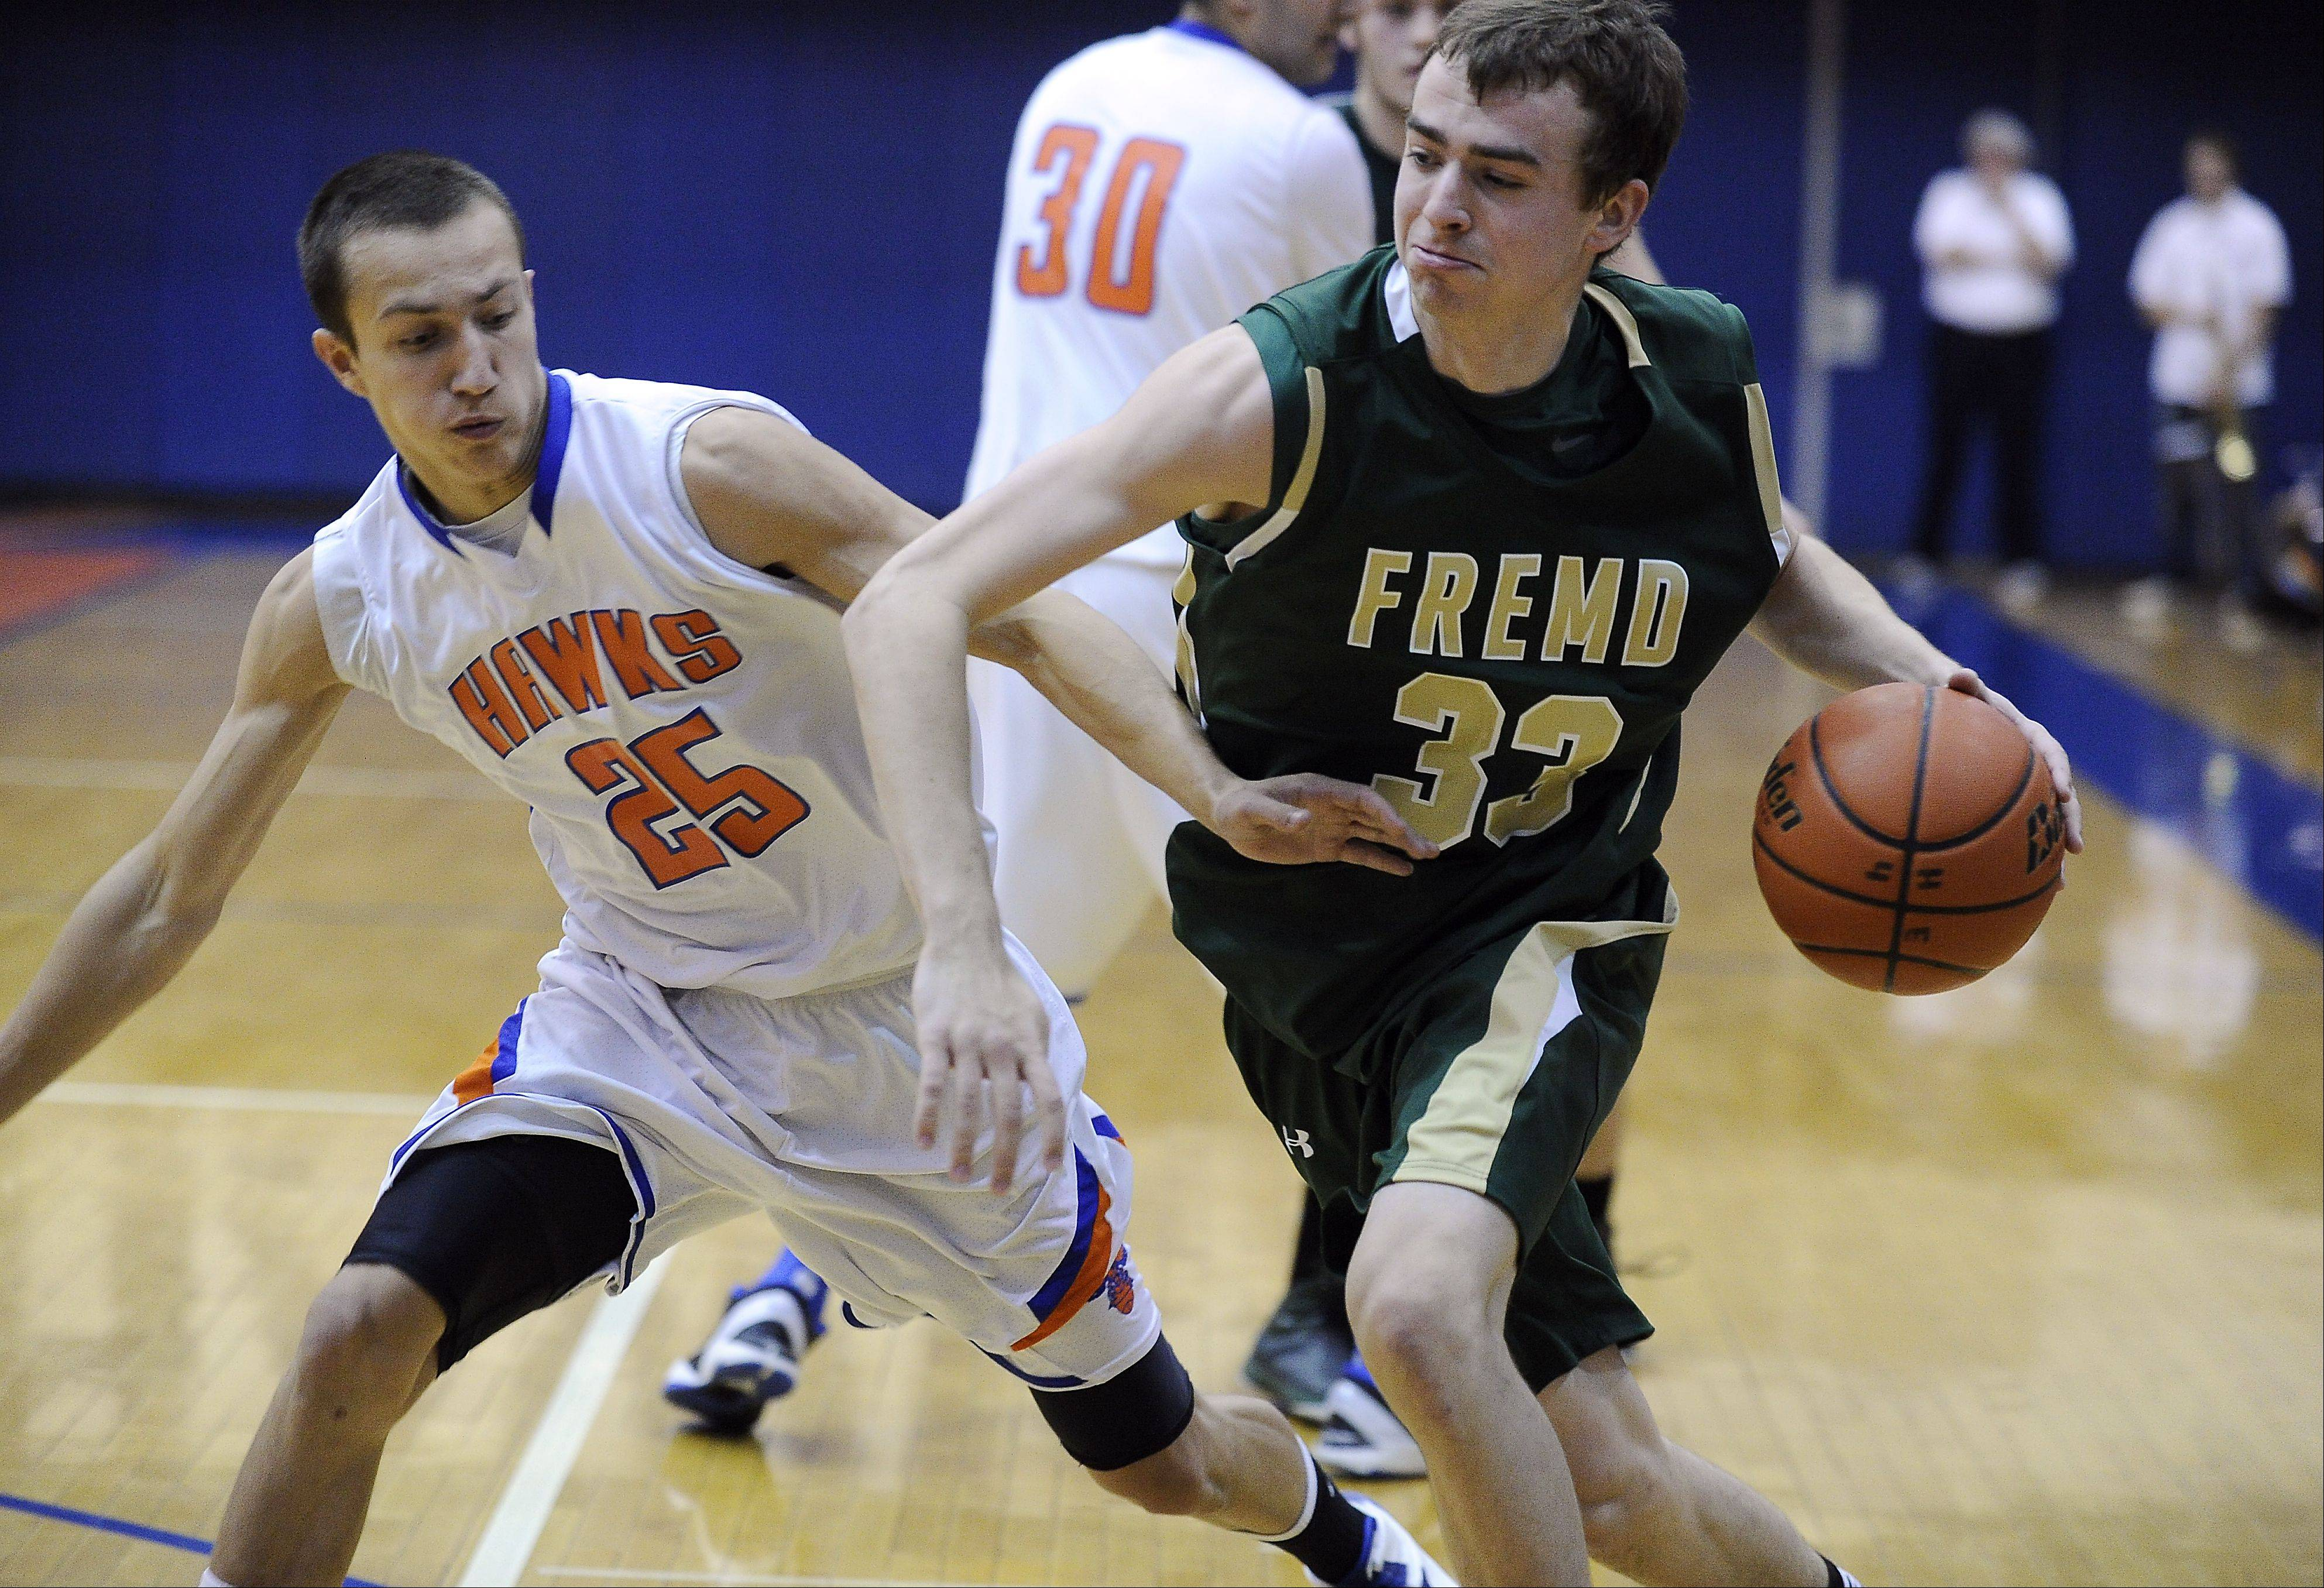 Fremd's Sean Benka drives around Hoffman's Jimmy Ward in the third quarter Thursday at Hoffman Estates.